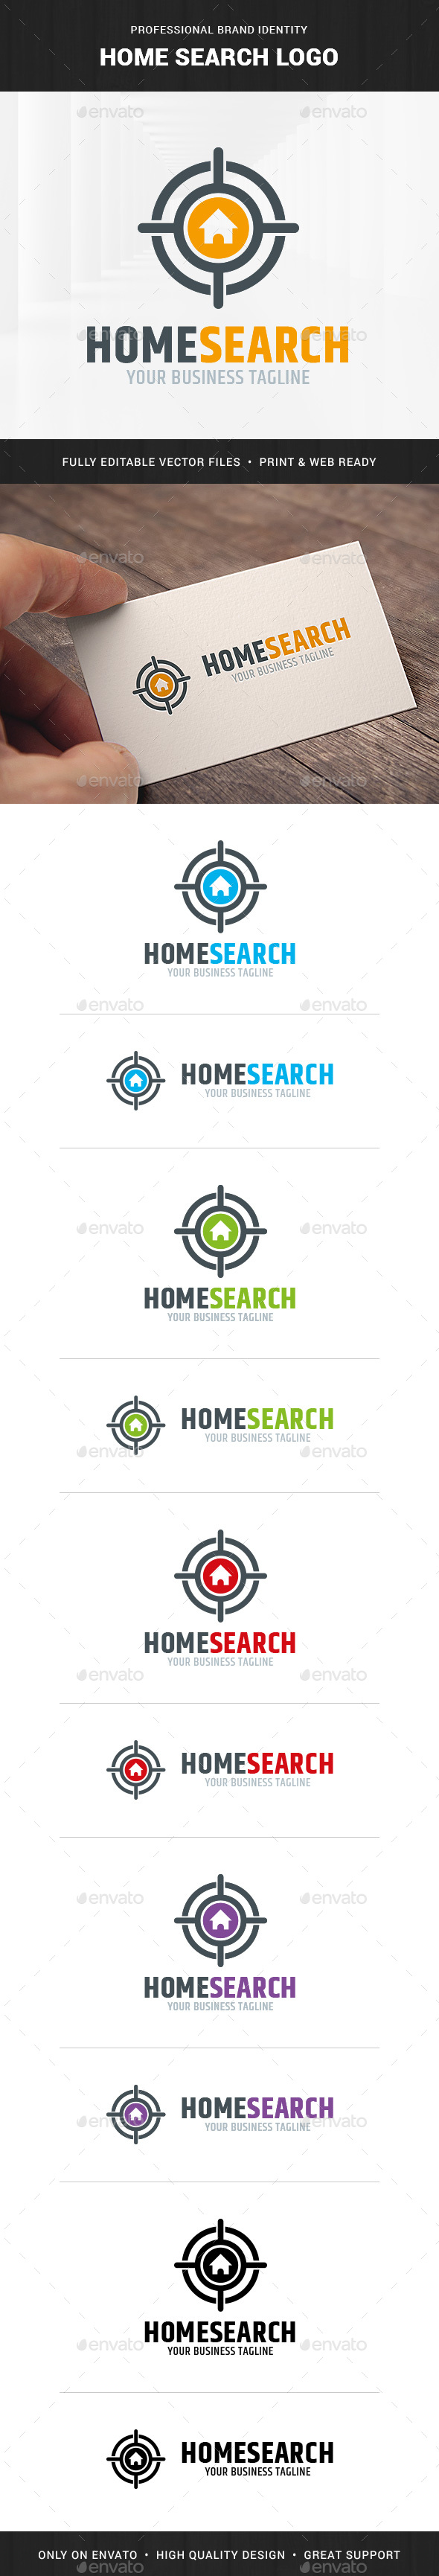 Home Search Logo Template